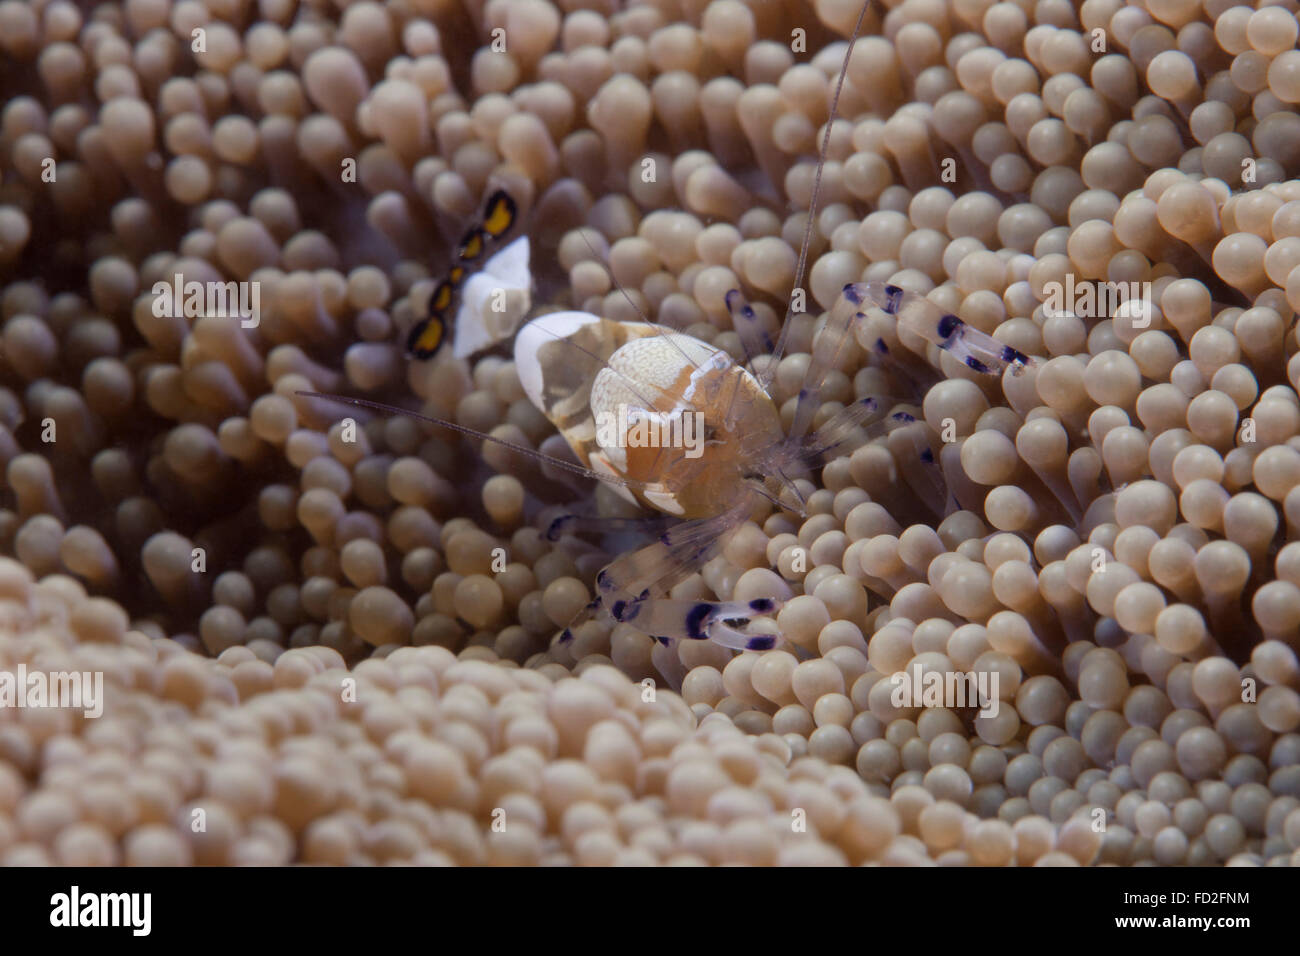 Popcorn Shrimp Animals Shrimp High Resolution Stock Photography And Images Alamy